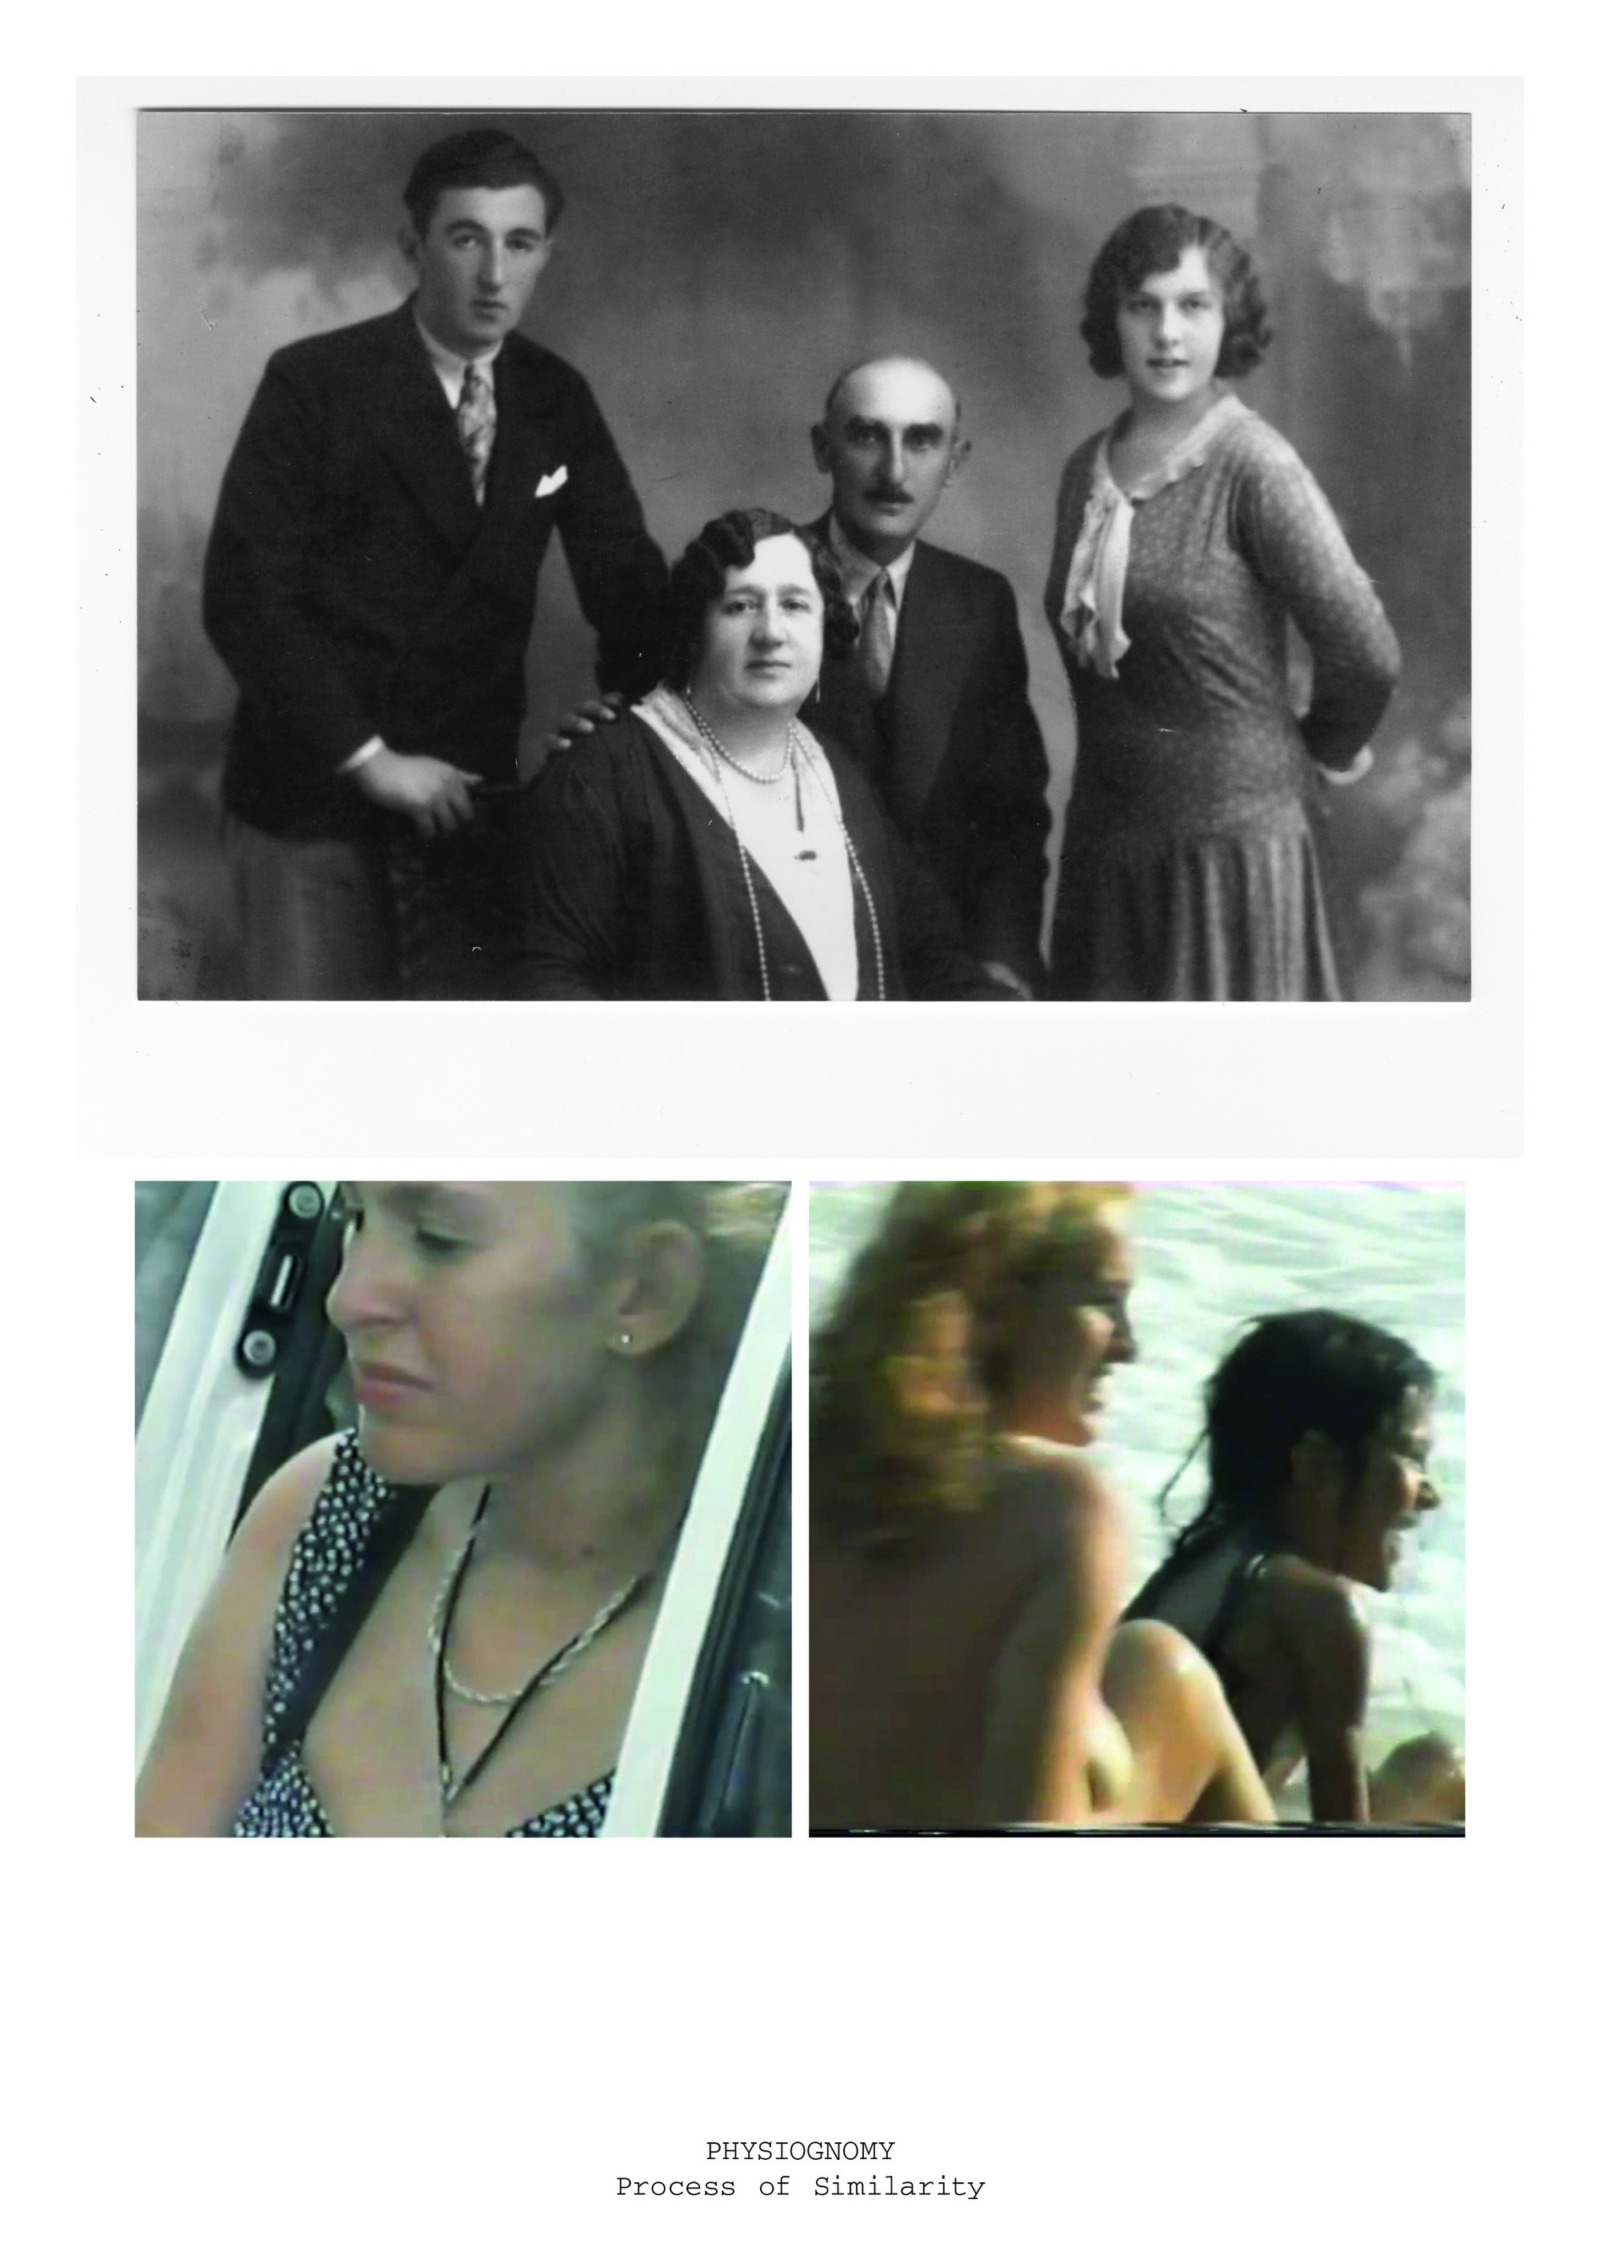 An early twentieth century family portrait is paired with stills taken from a video of a late twentieth century family holiday.